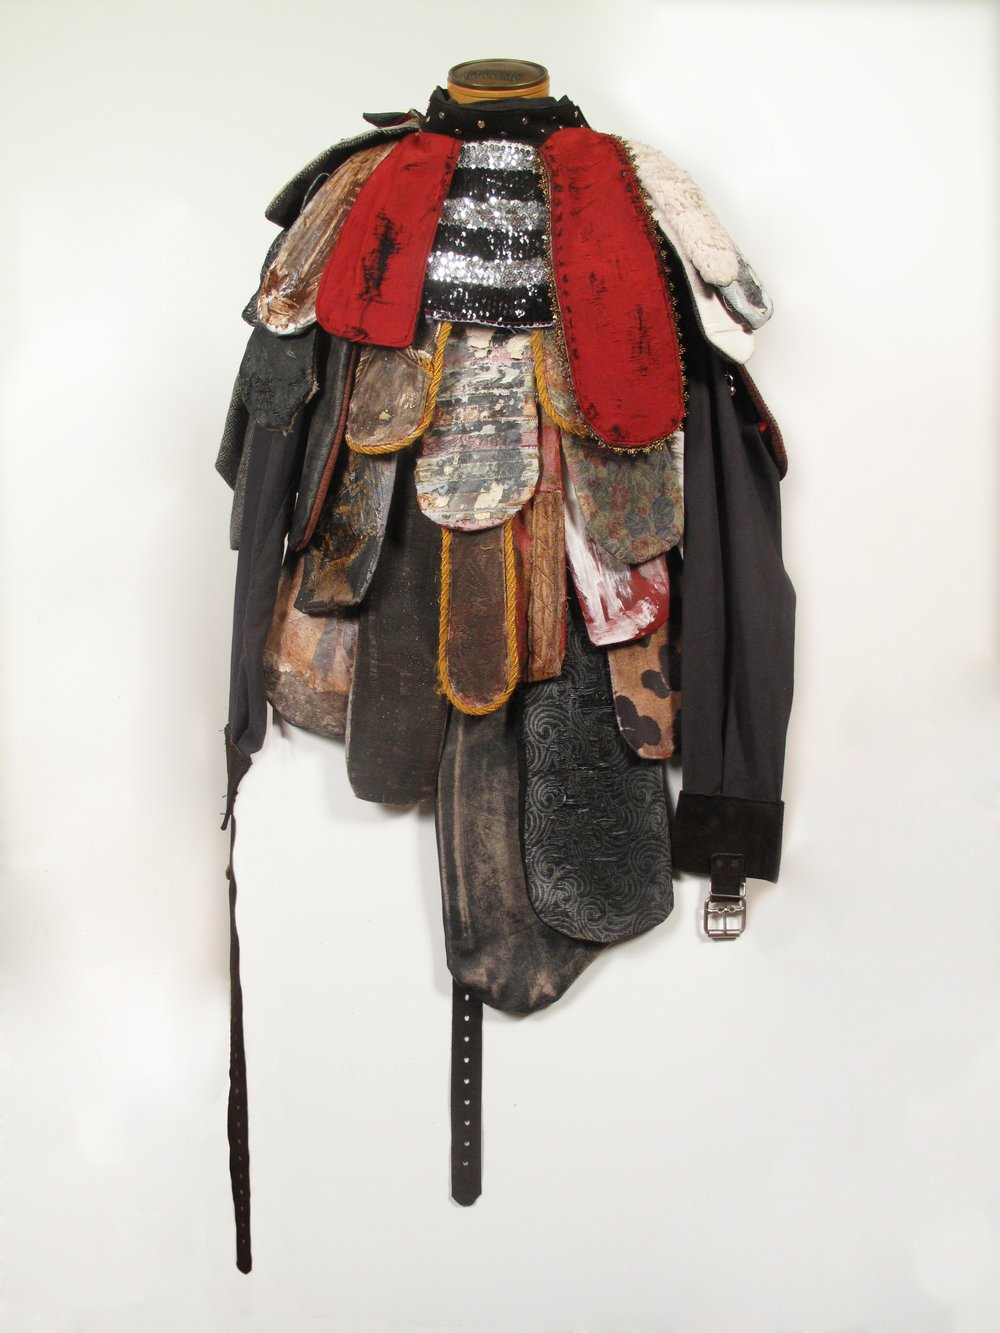 "Jefferson Pinder  Magical Negro (Egungun)   2013 straitjacket, acrylic, fabric, collage transfer, copper leaf, sequins, fencing mask, central armature 48"" x 22"" x 12"""